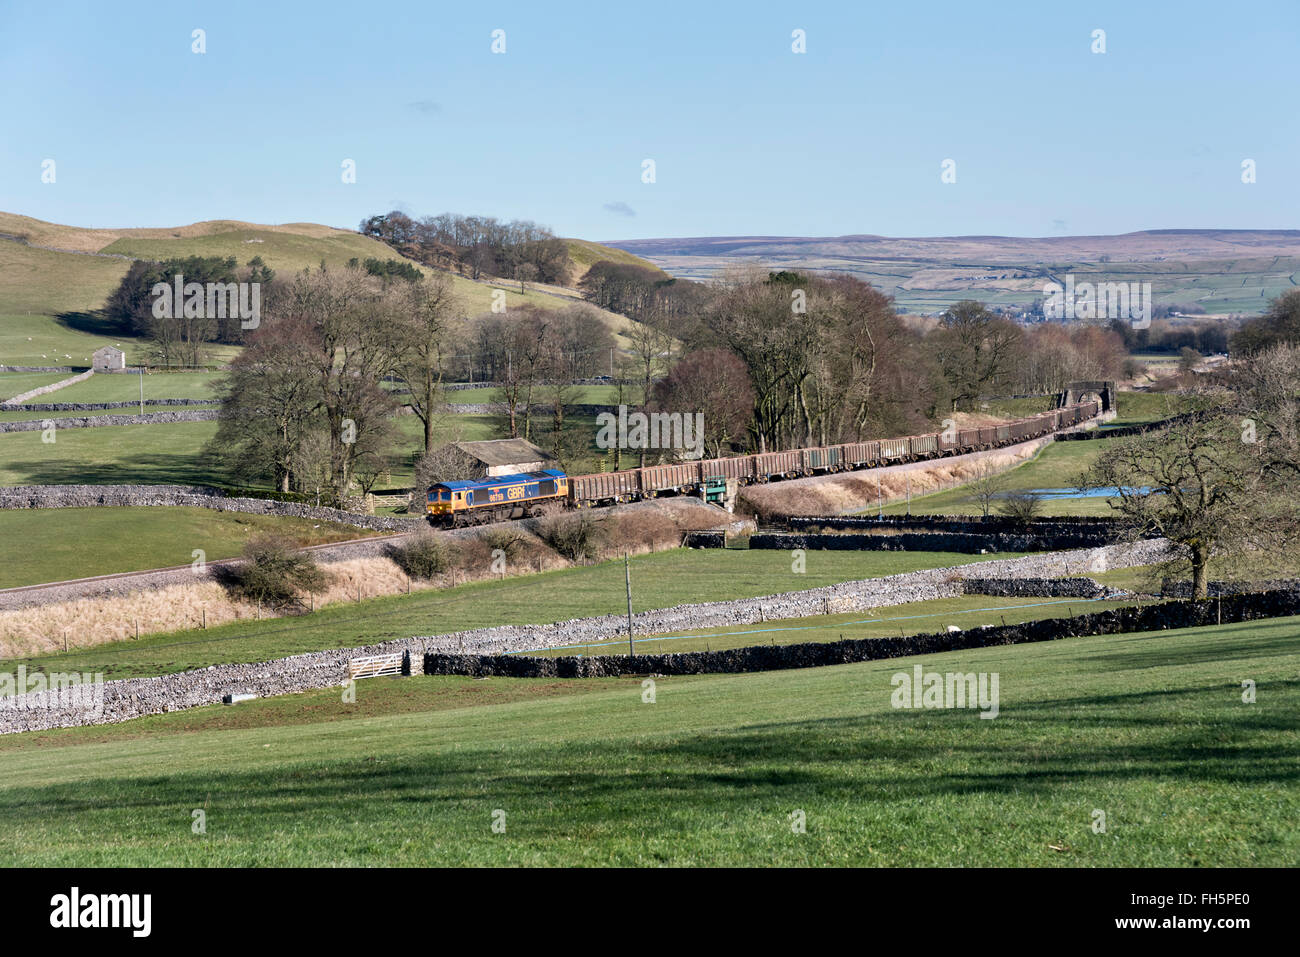 A minerals train from Swinden Quarry passes Cracoe near Grassington in the Yorkshire Dales National Park, UK. - Stock Image